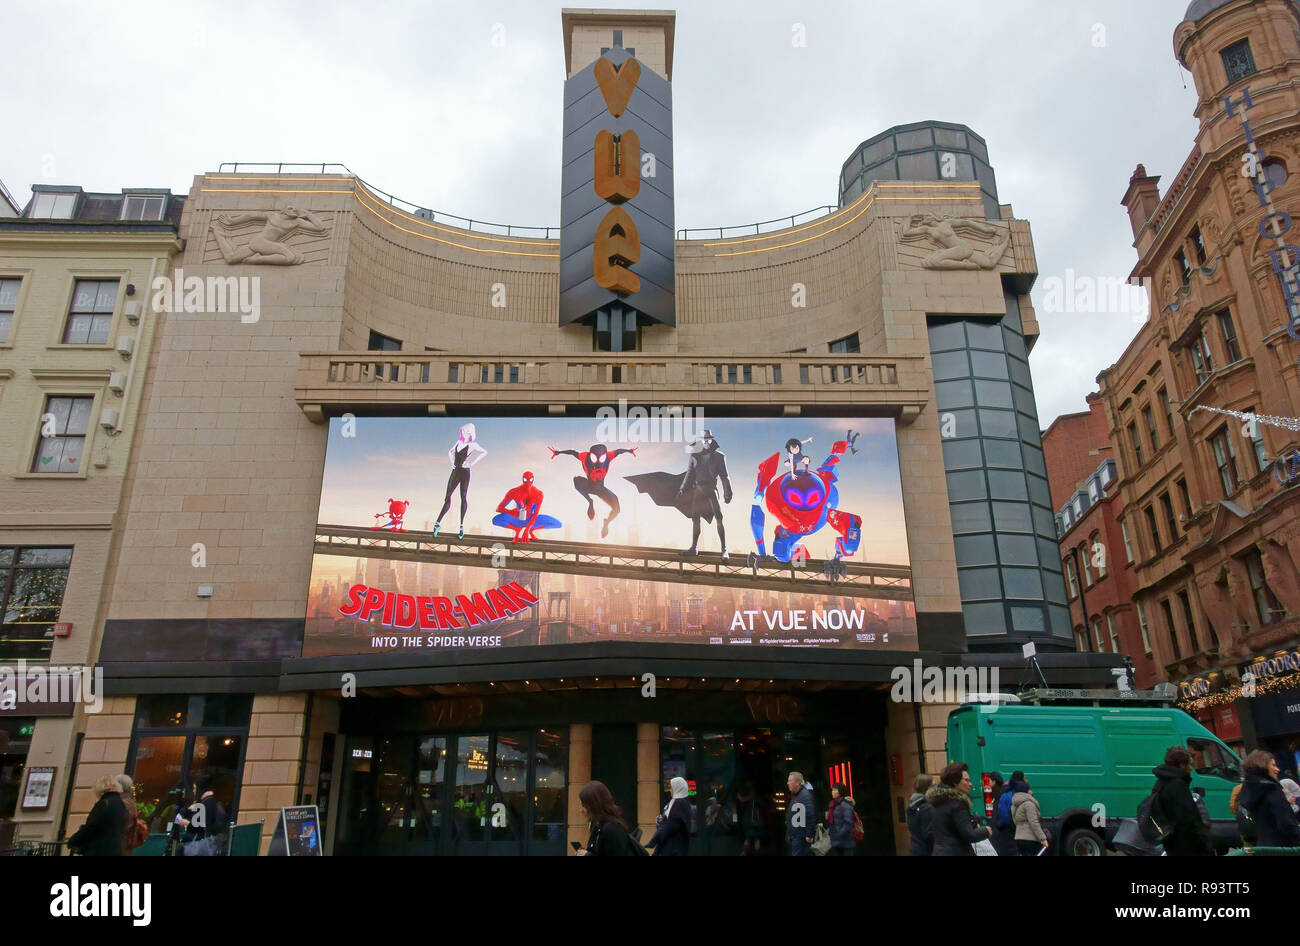 'Spiderman - Into The Spider-verse' showing at Vue Cinema in Leicester Square, London - Stock Image